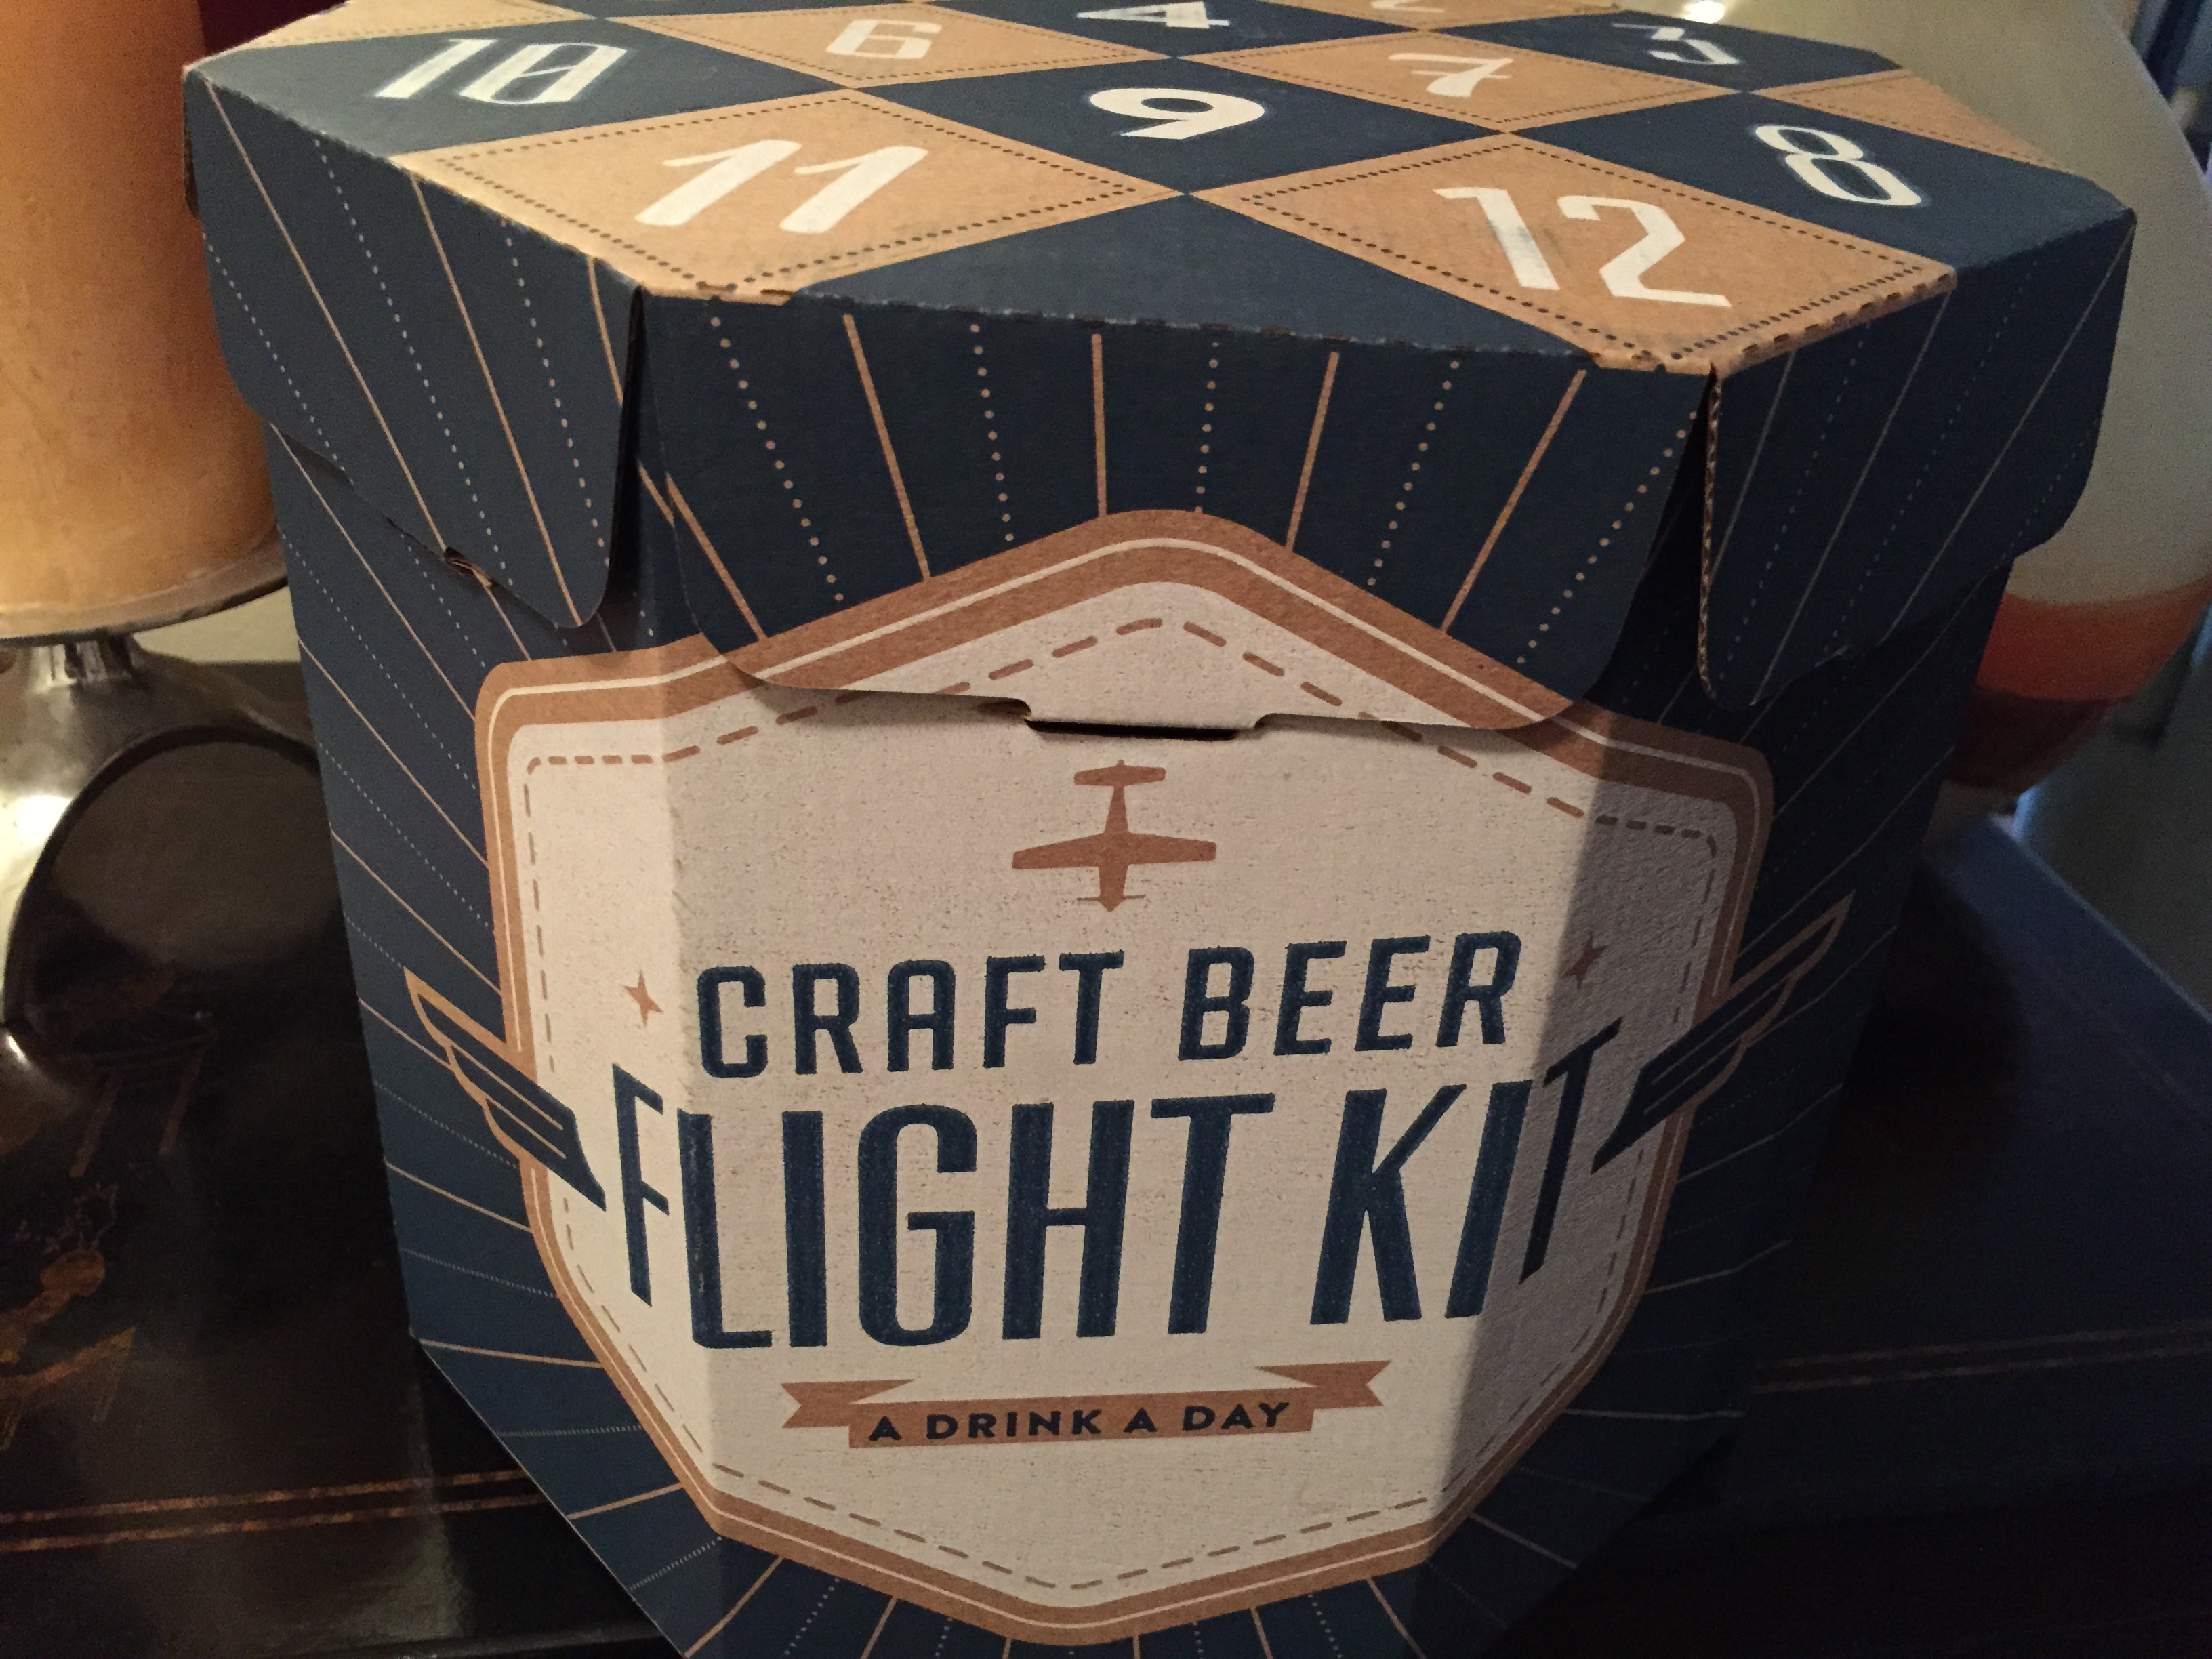 Craft beer gift box - Each Box Comes With 12 Beers In Custom Packaging With Selections Hand Picked By 9 Different Craft Beer Locations Bars Throughout The United States